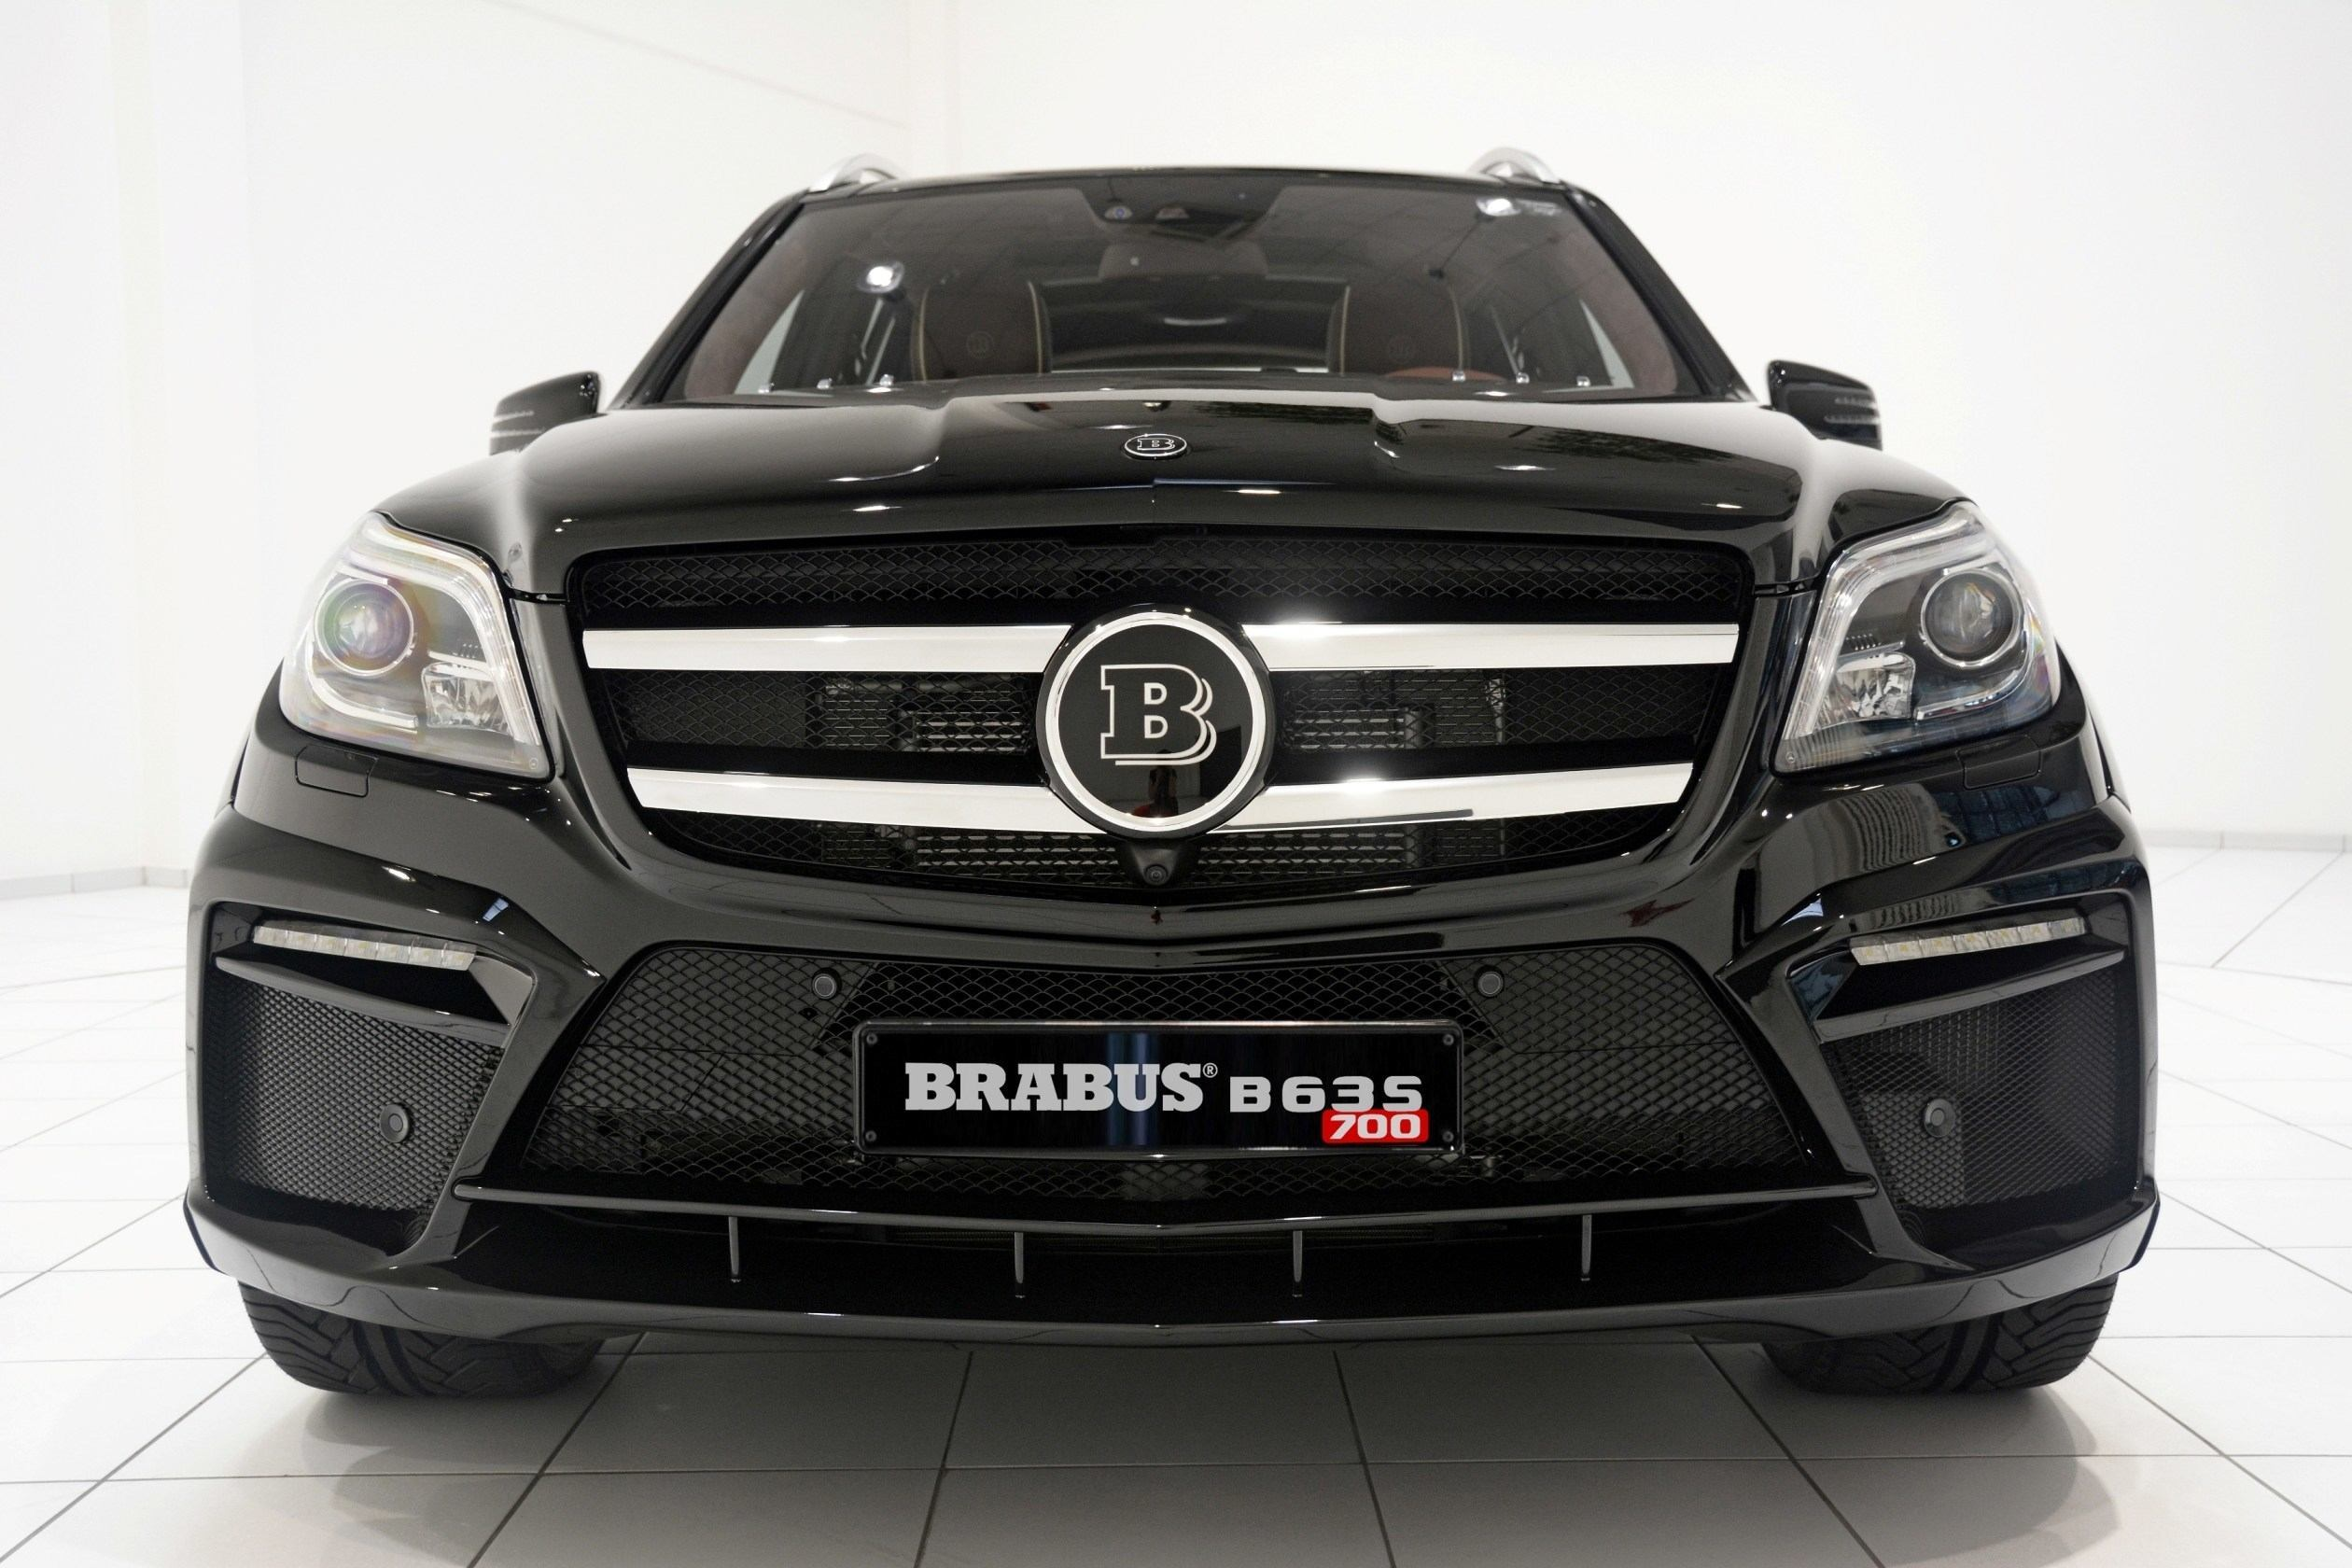 186mph 7 seat suv brabus b63s 700 widestar for mercedes for Mercedes benz classes list